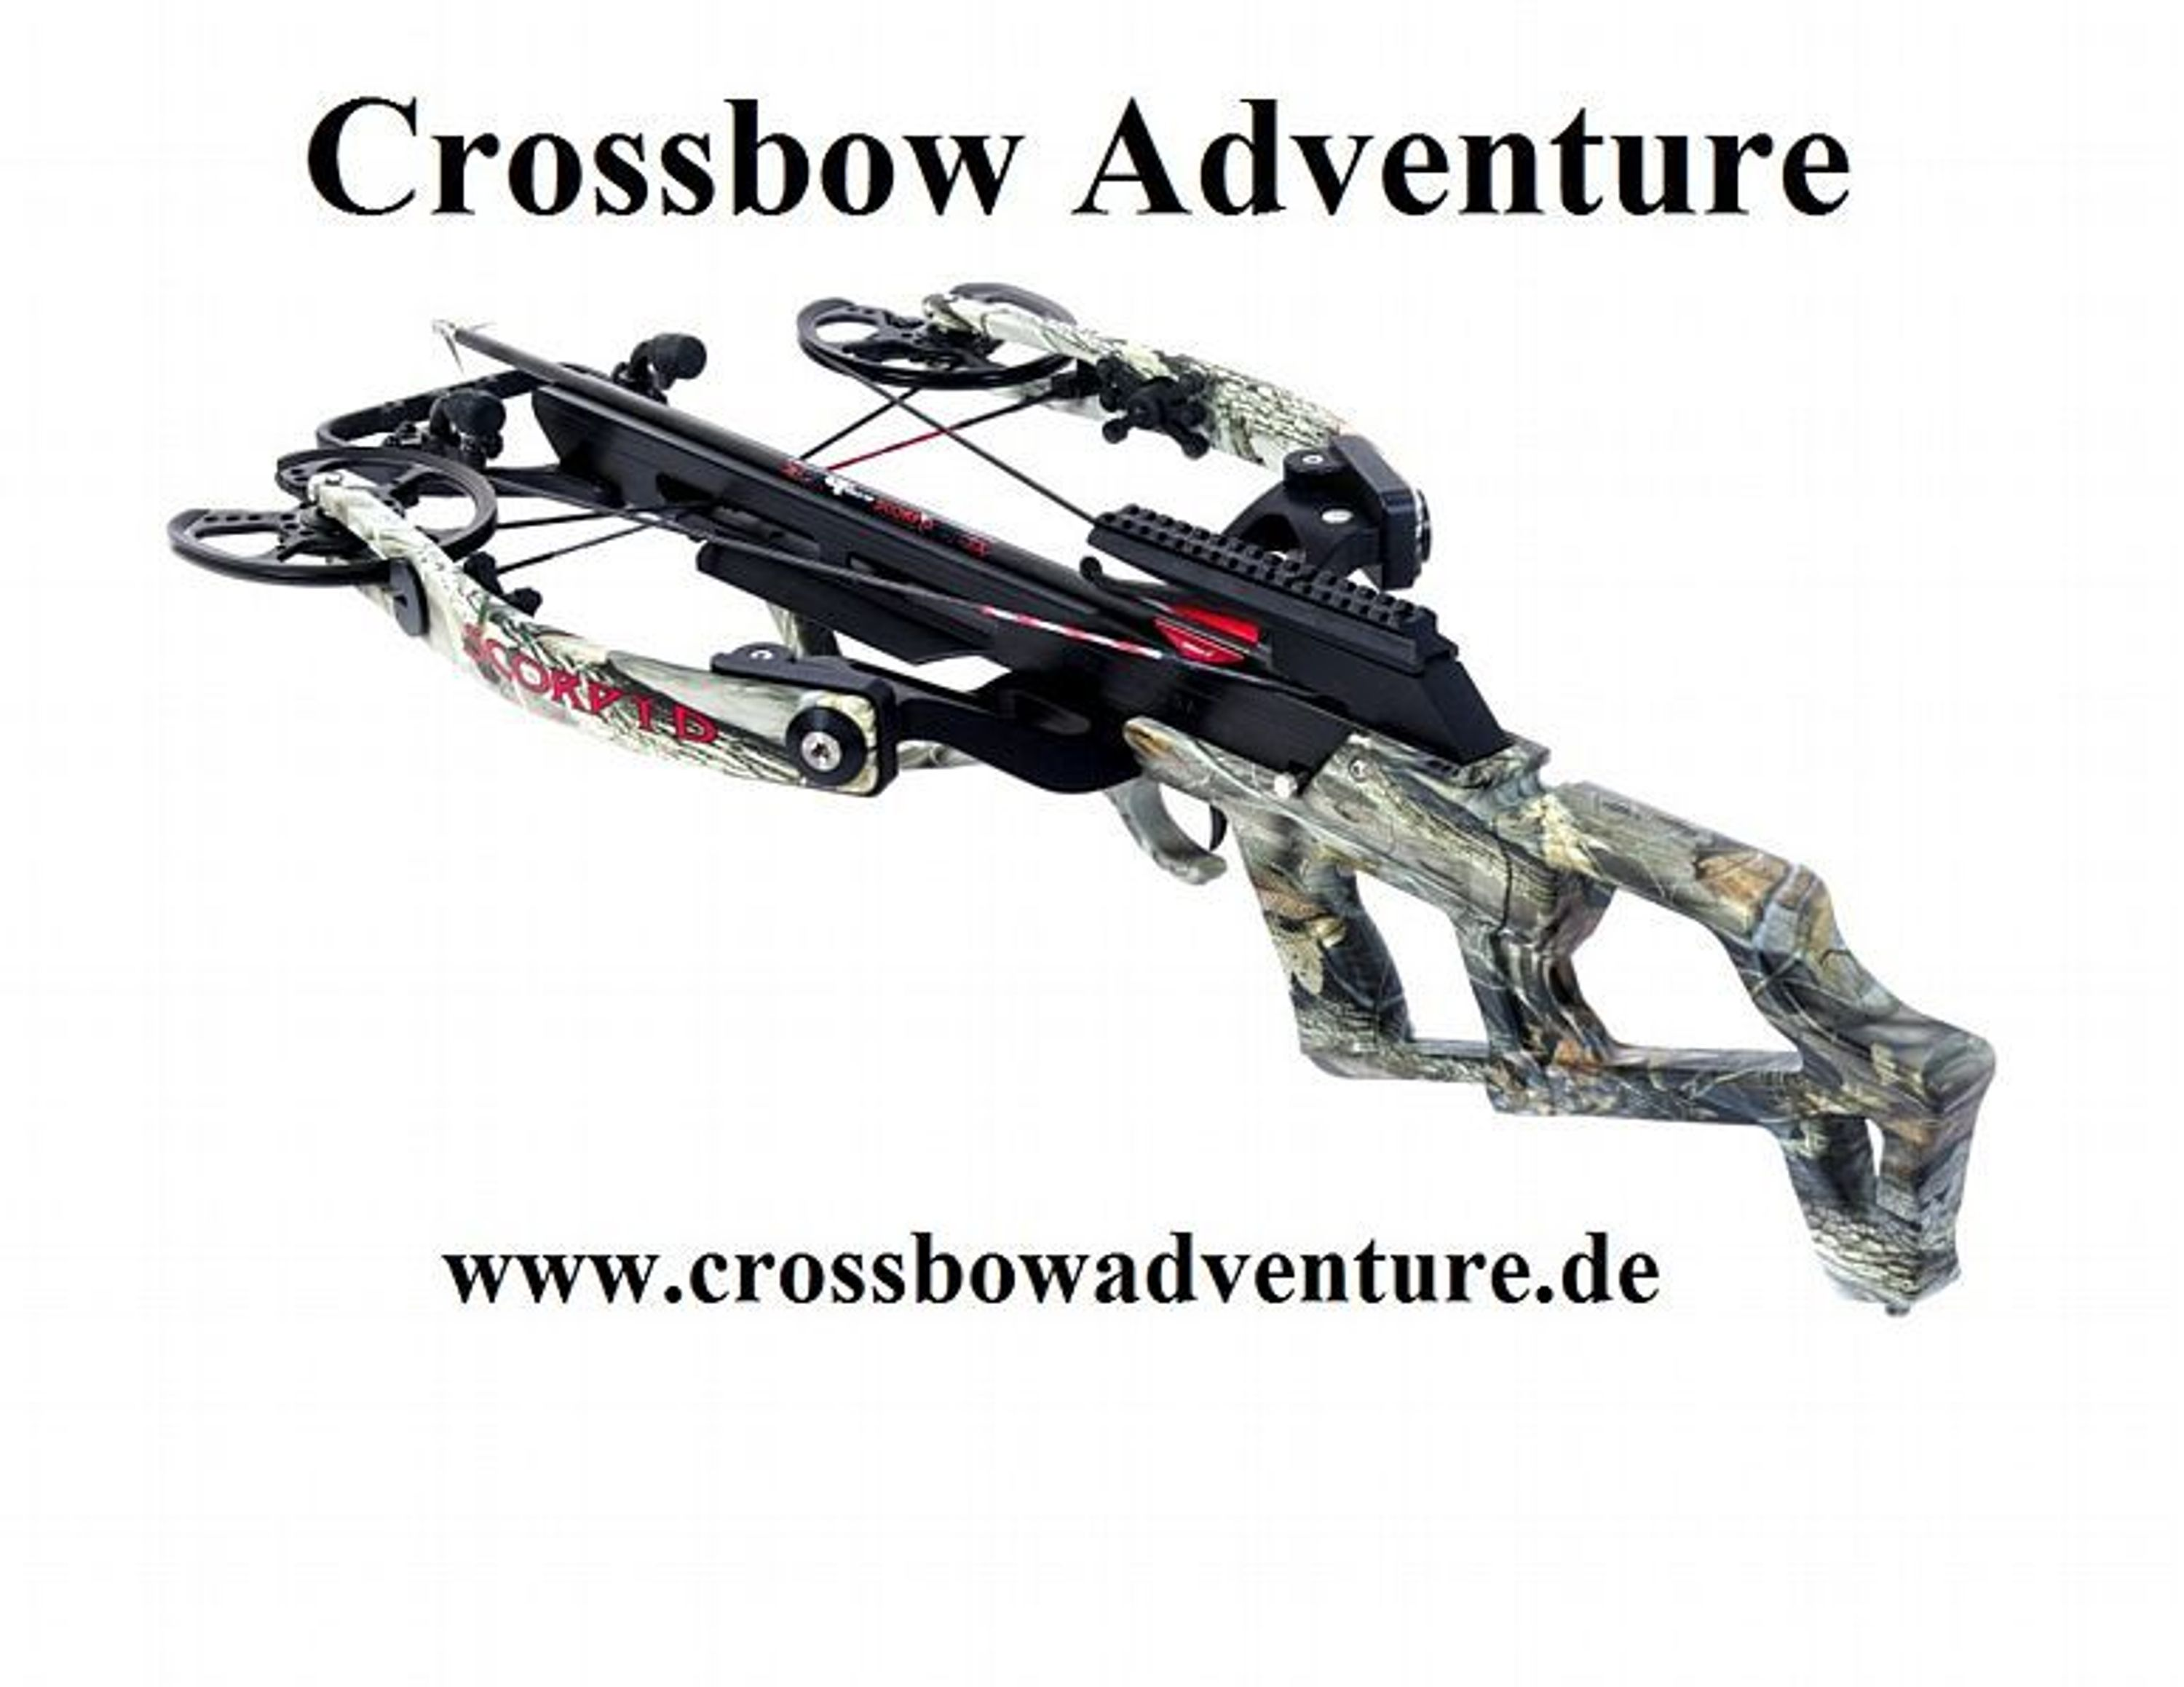 Crossbow Adventure